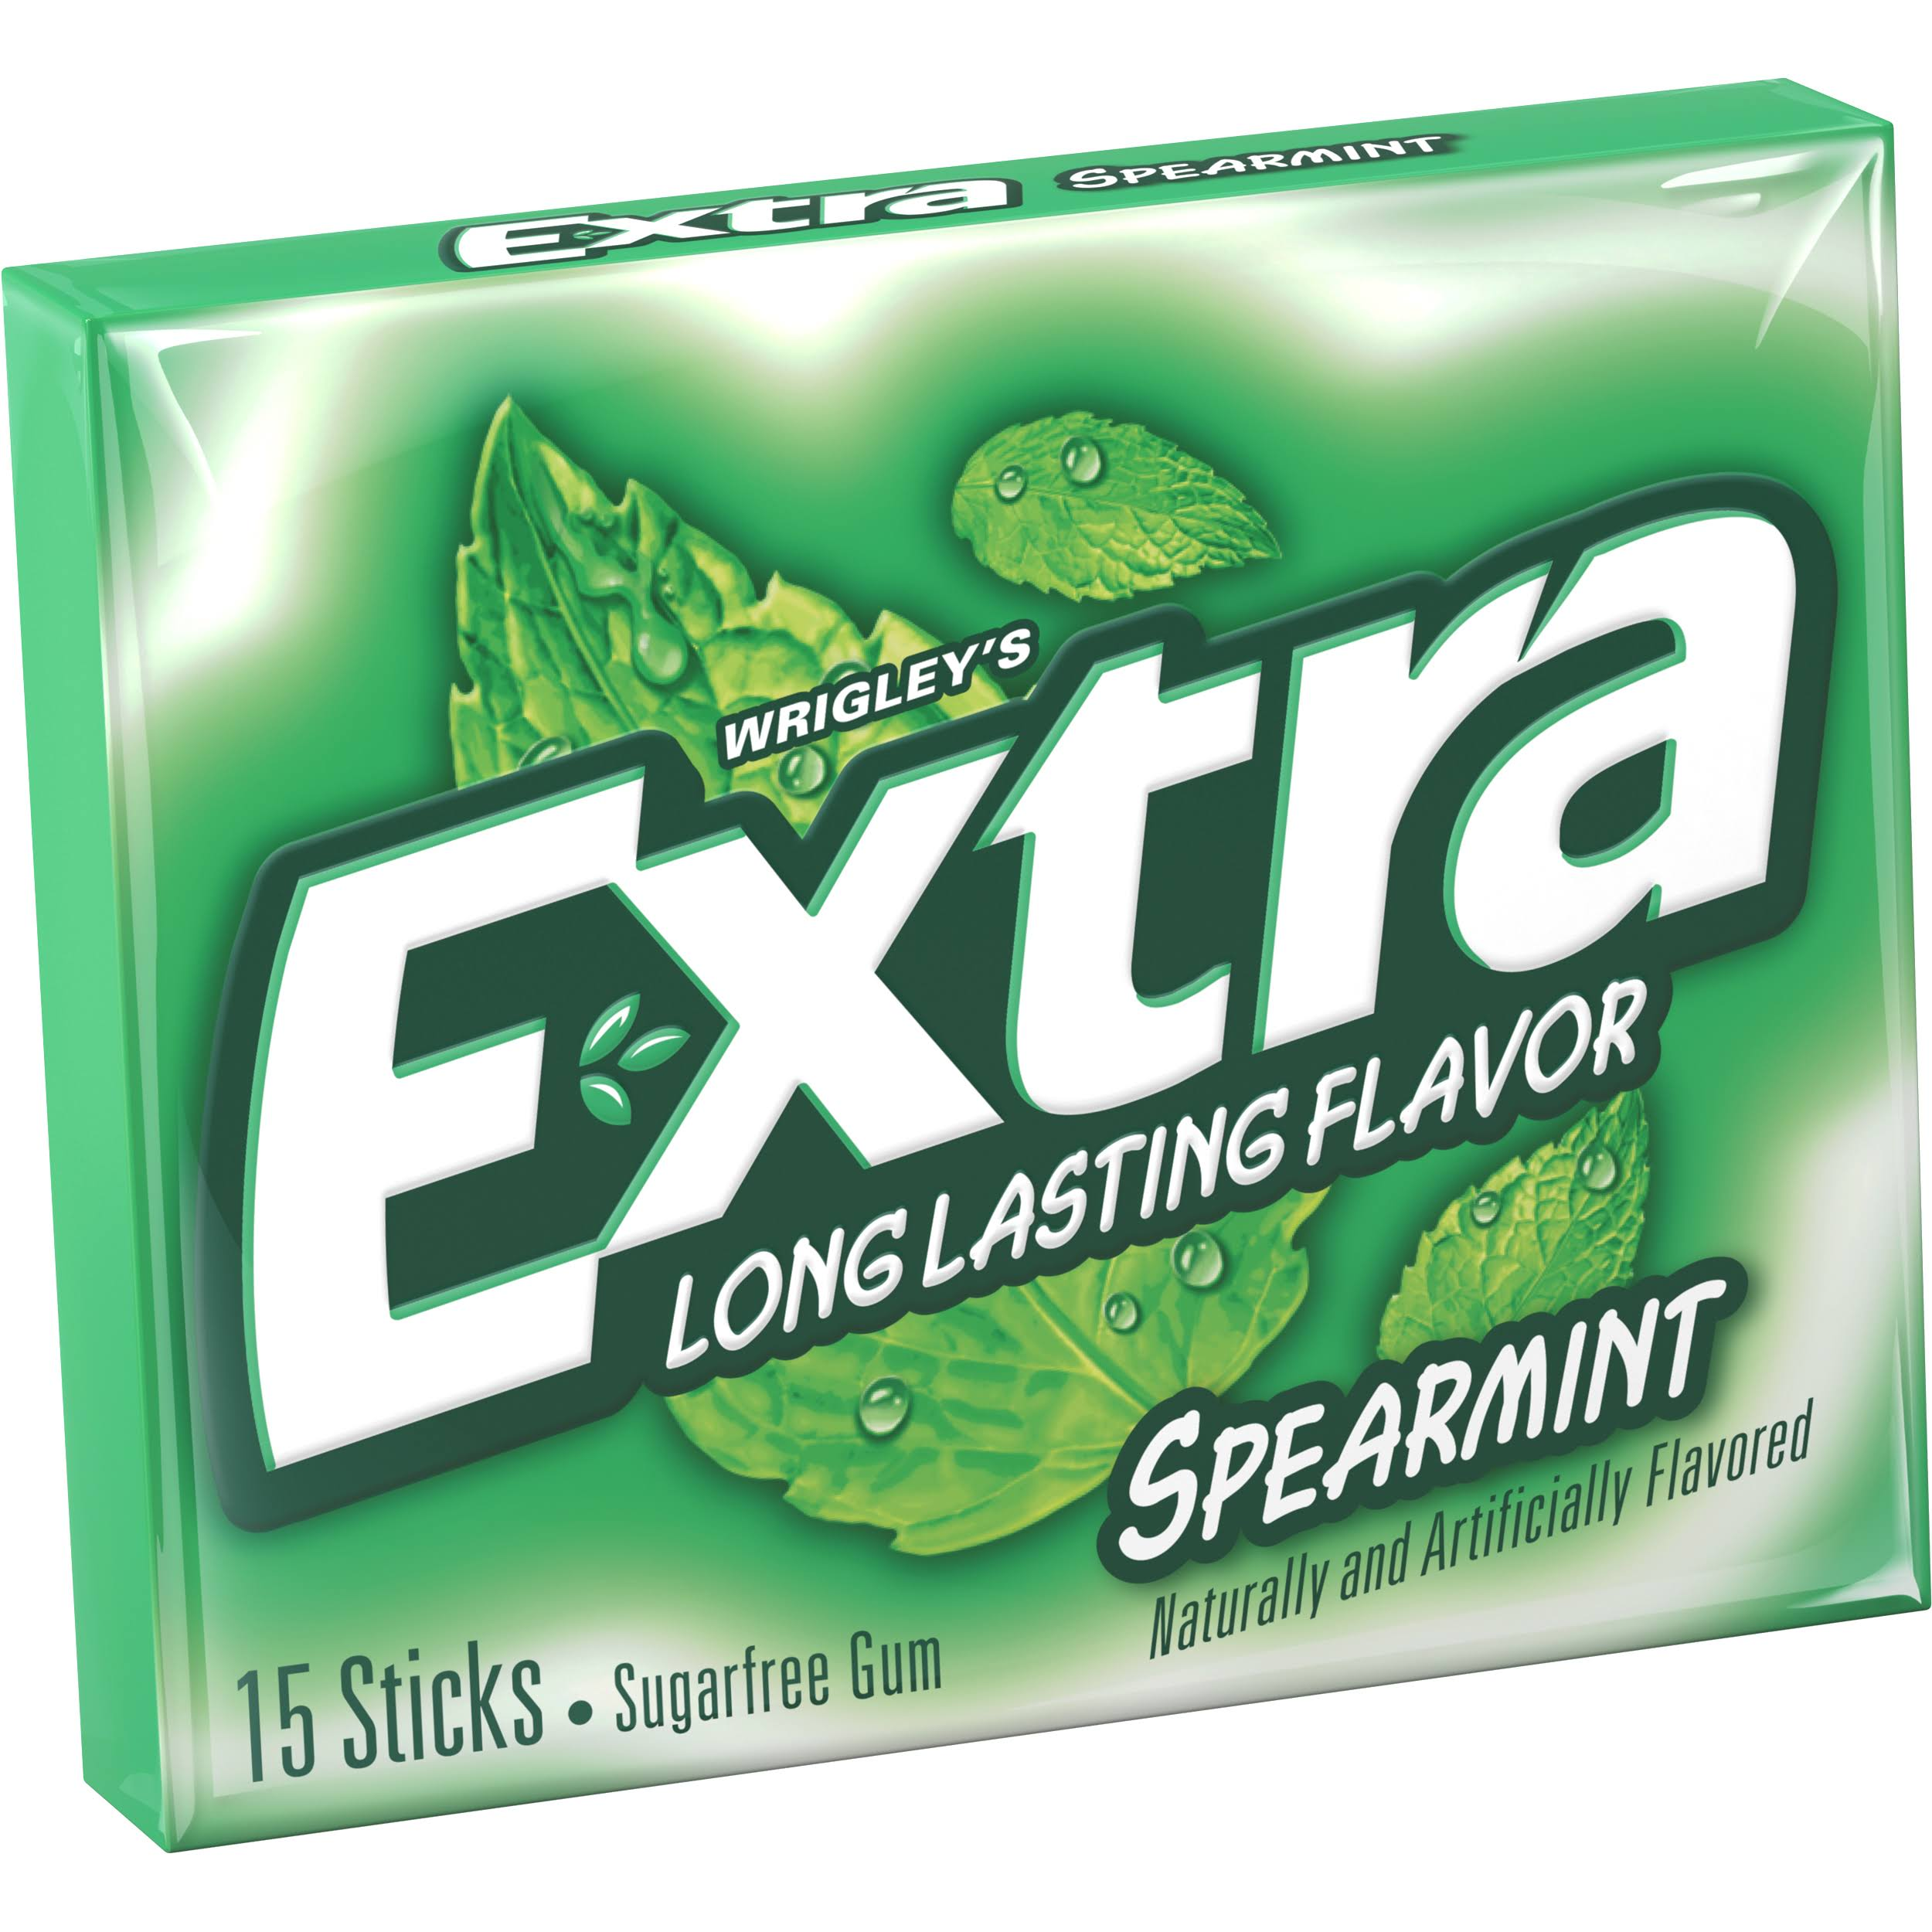 Wrigleys Extra Sugar Free Chewing Gum - 15 Sticks, Spearmint